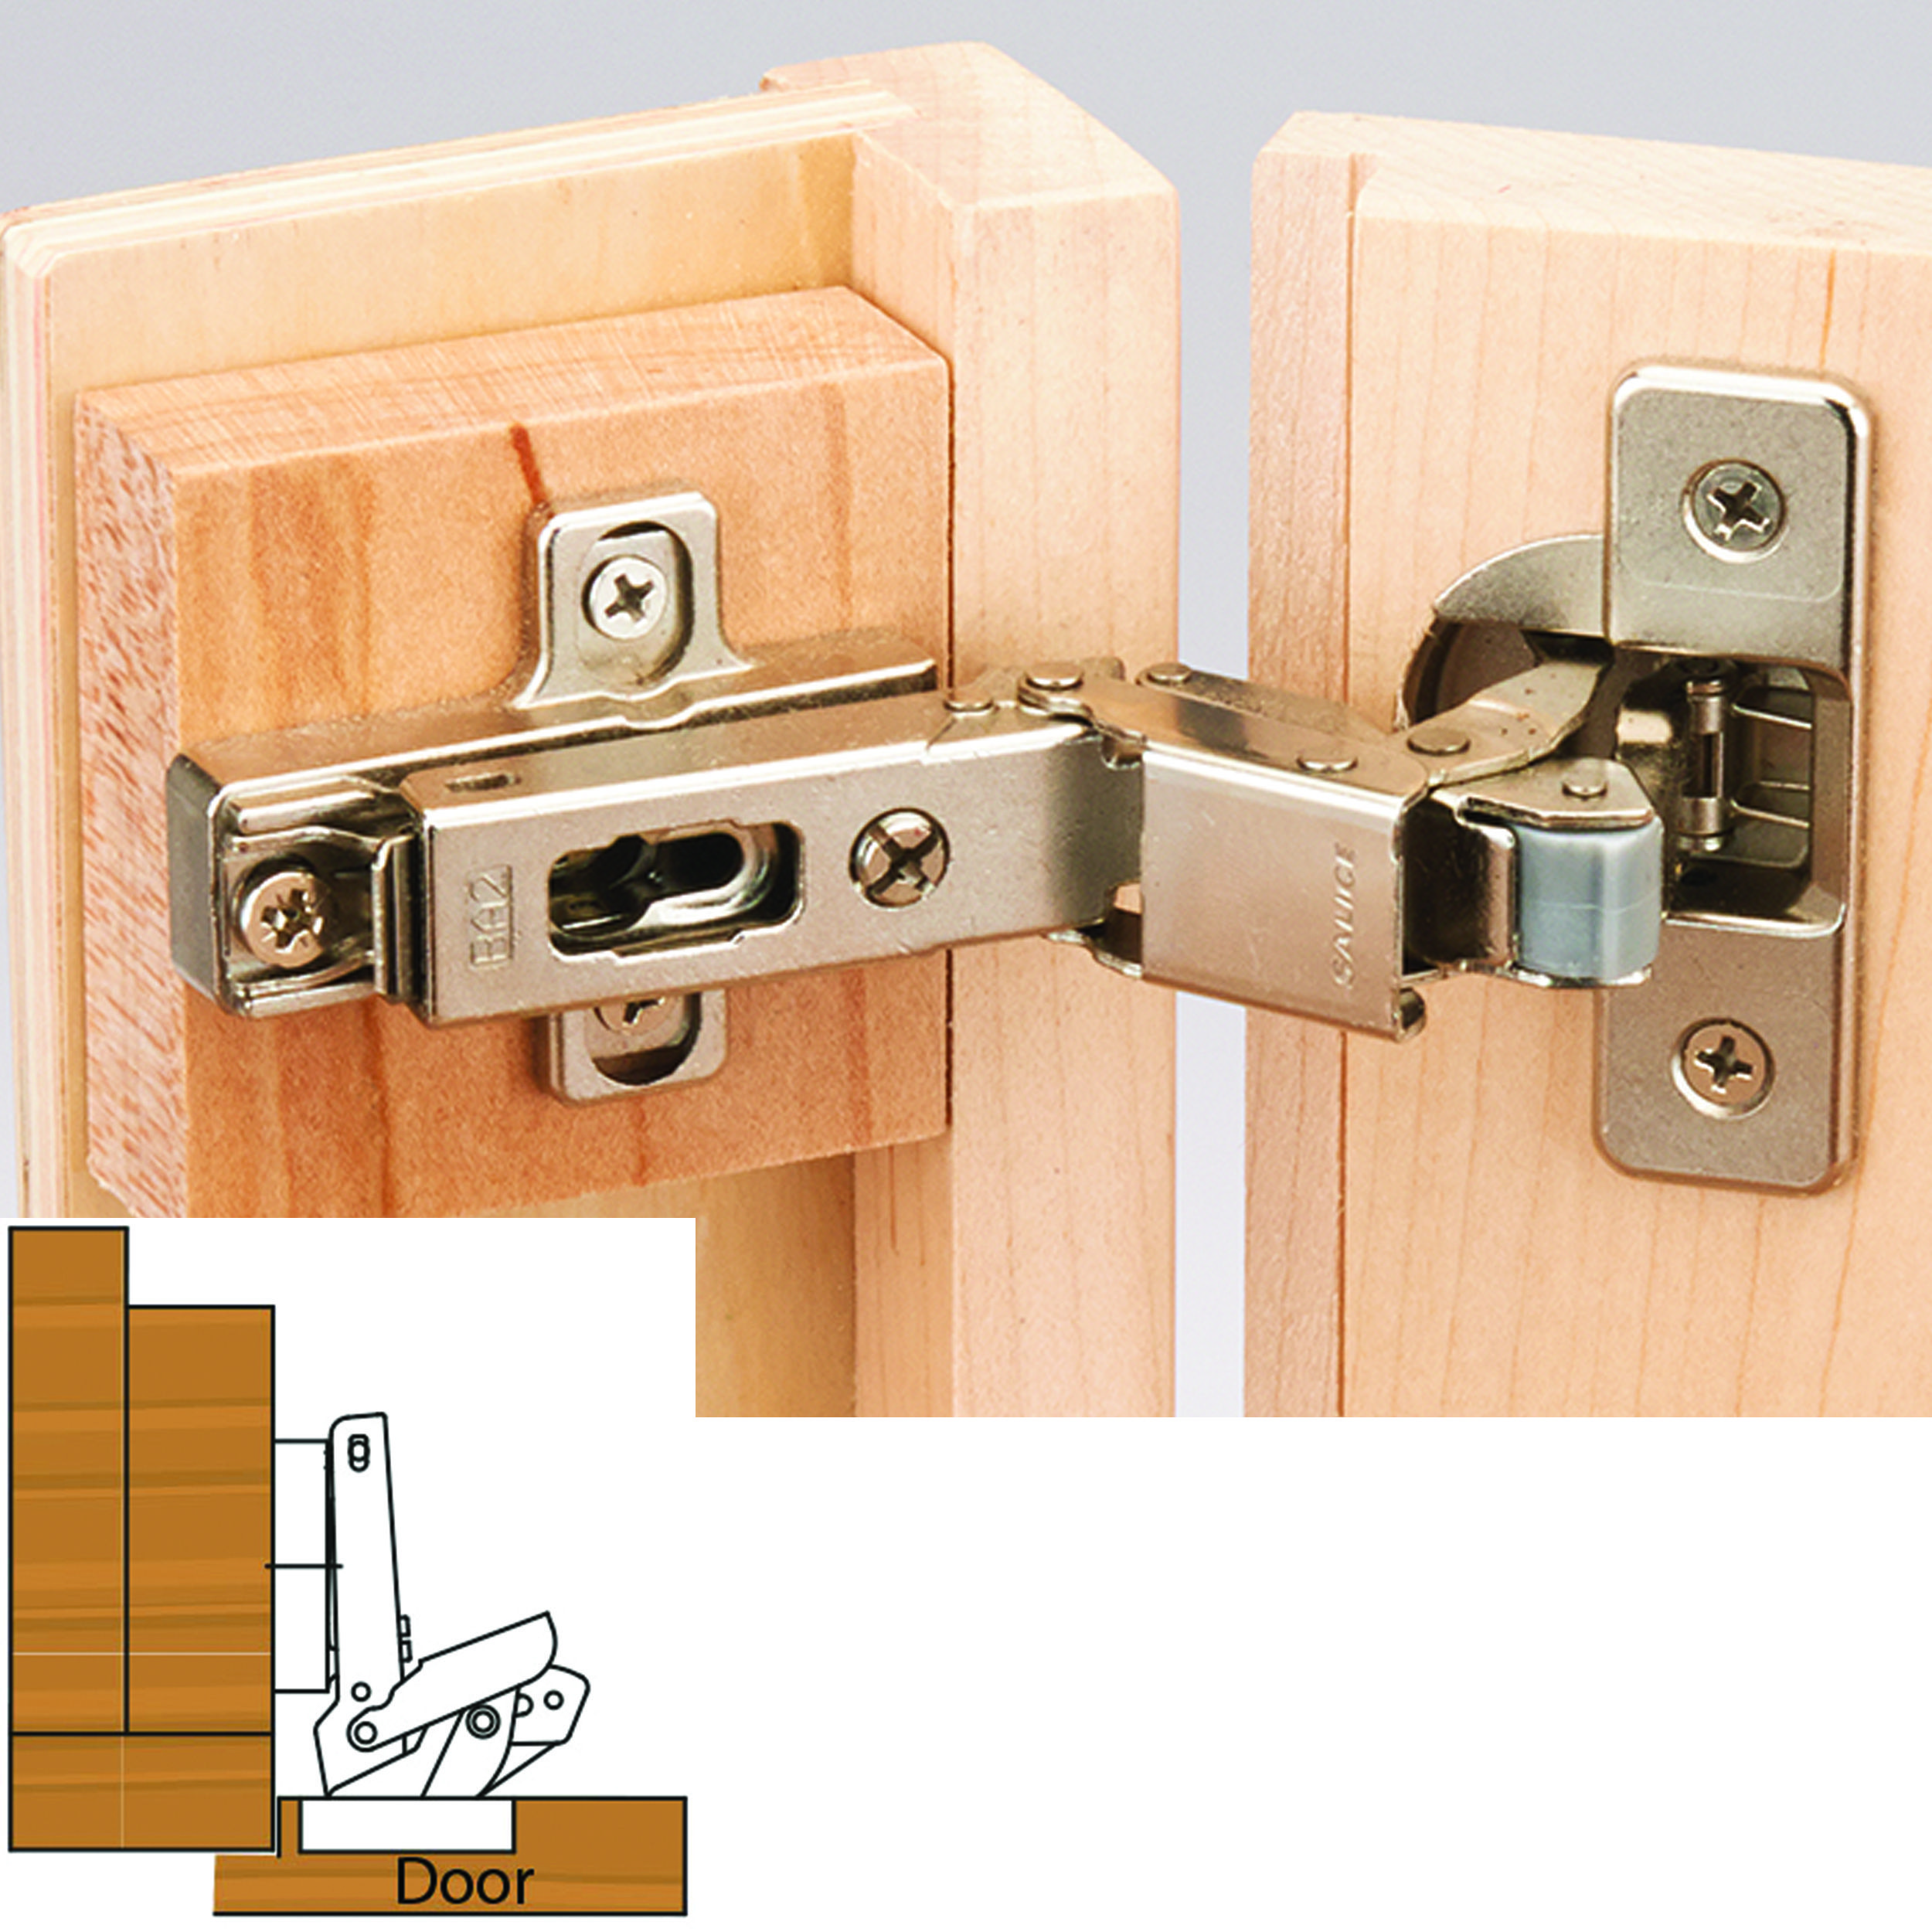 Salice 110 Degree Self Close 3 8 Lipped Face Frame Hinge Nickel Finish Pair In 2020 Concealed Hinges Hidden Hinges Nickel Finish